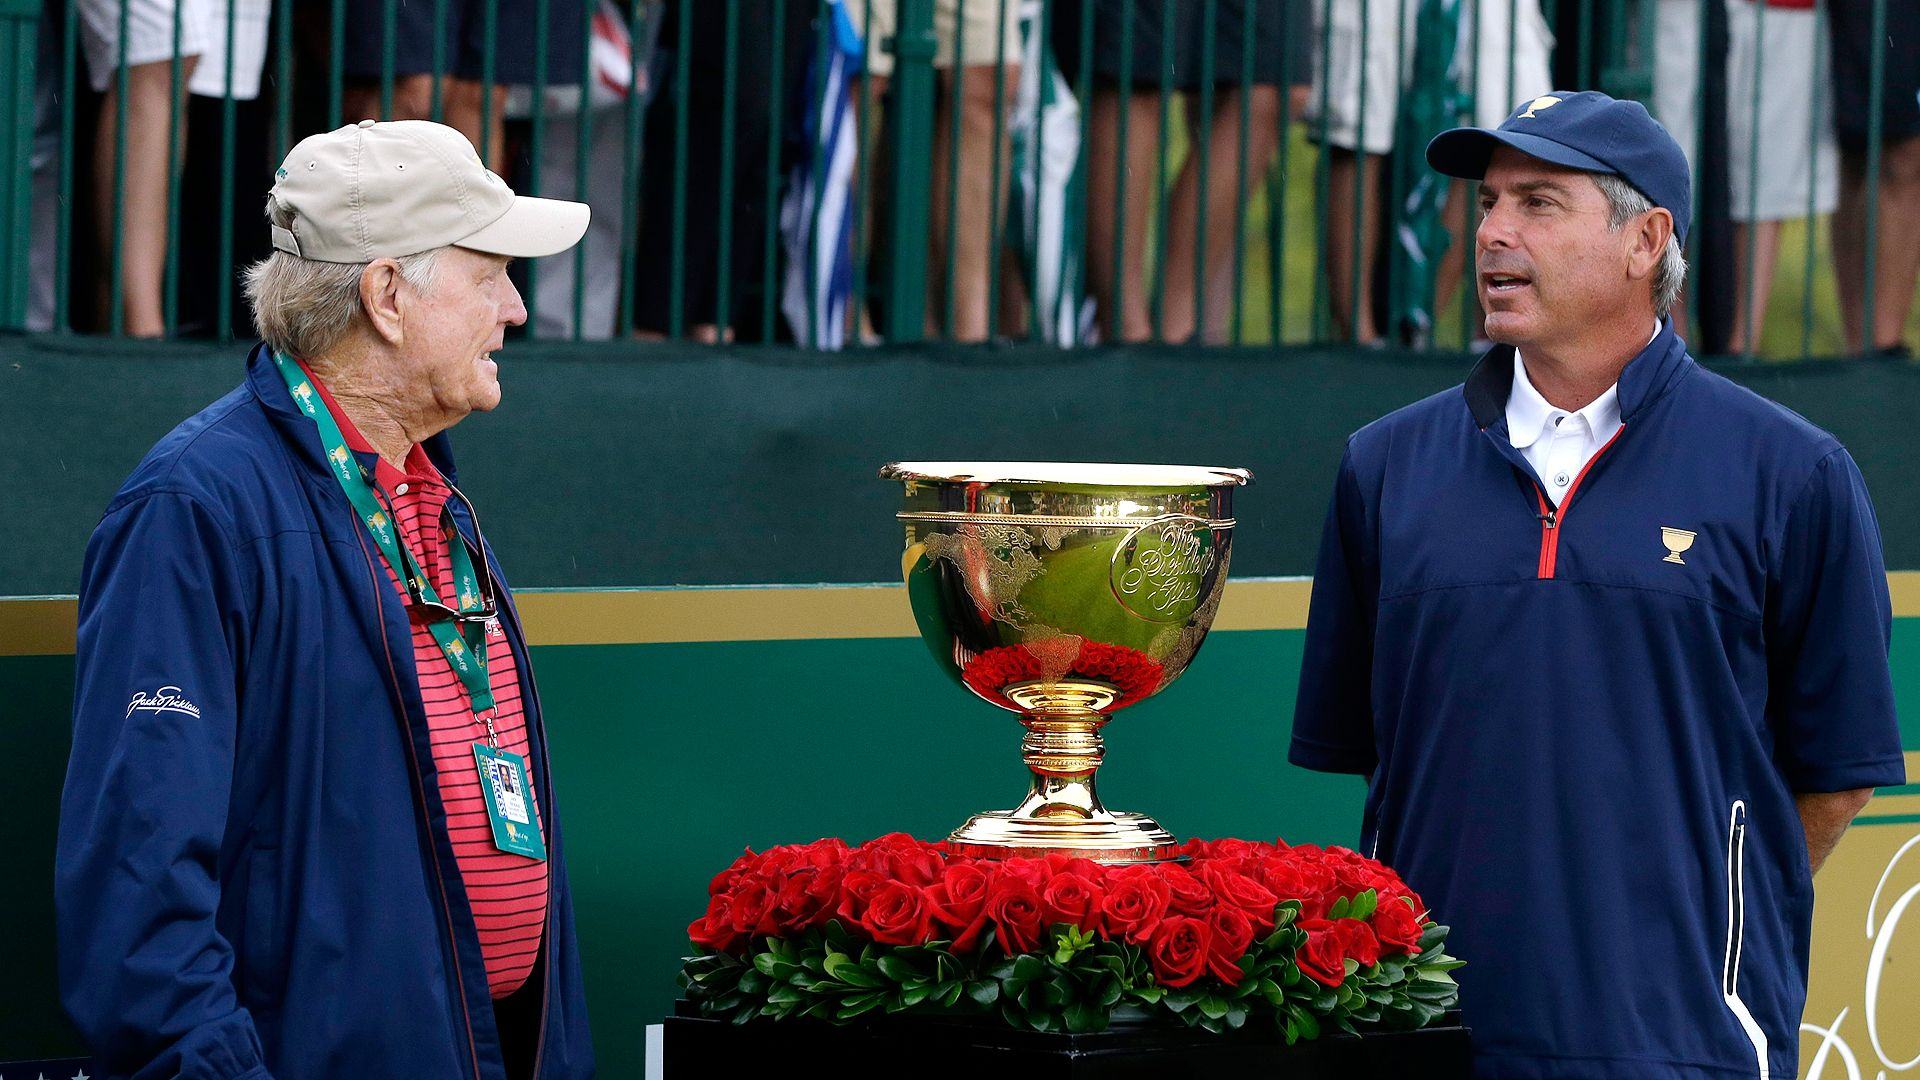 Presidents Cup captains flubbed it in Sunday singles -- golf